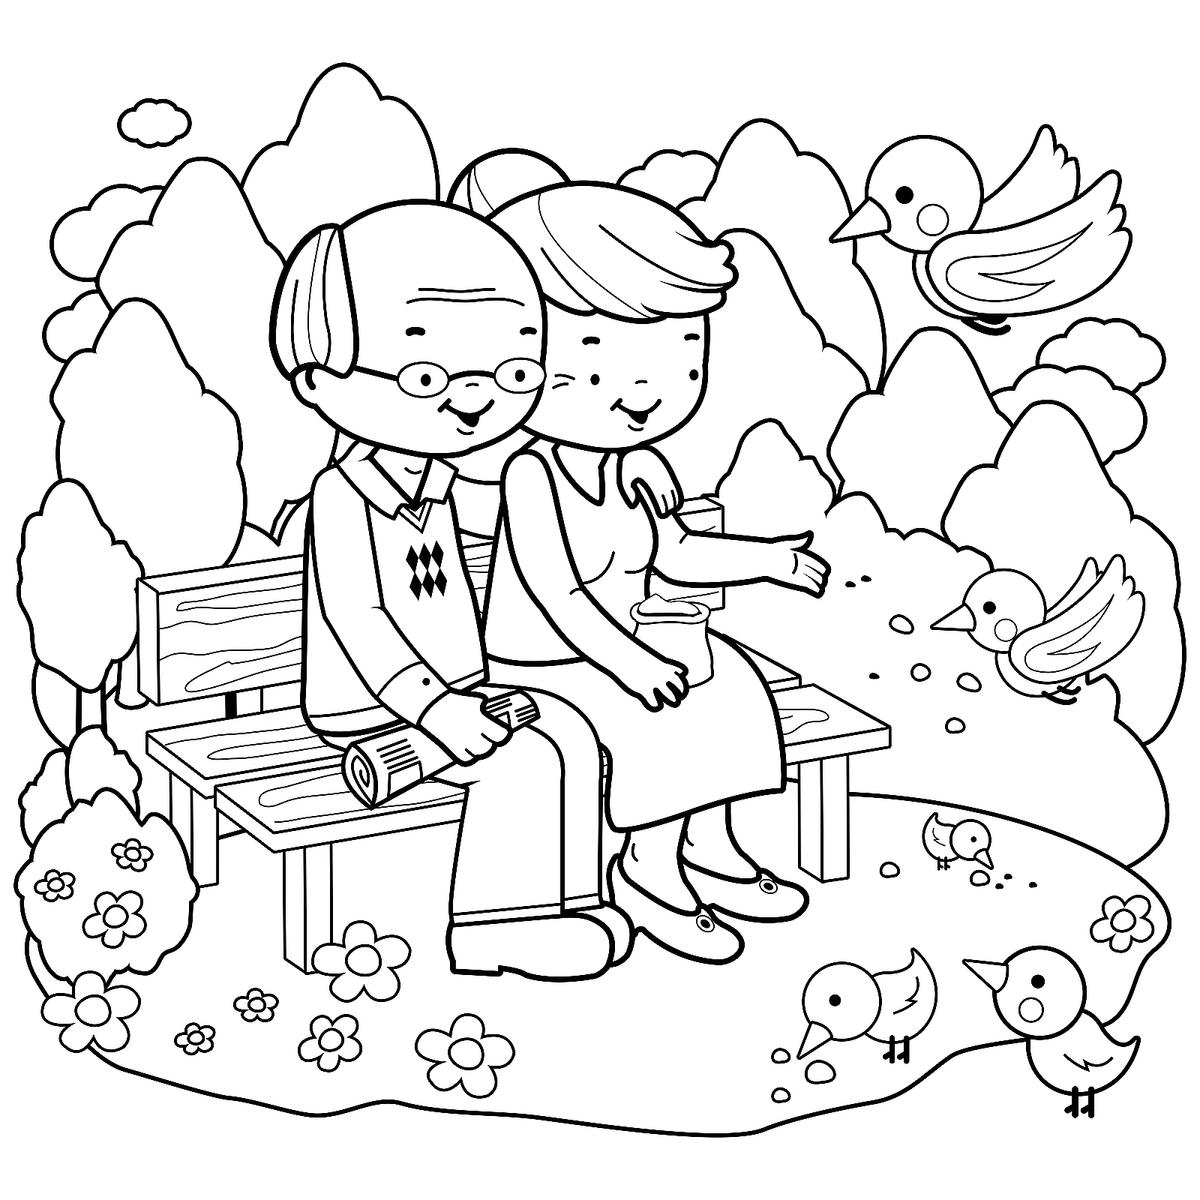 Grandparents Coloring Pages Free Fun Printable Coloring Pages Of Grandmas Grandpas For Kids Printables 30seconds Mom